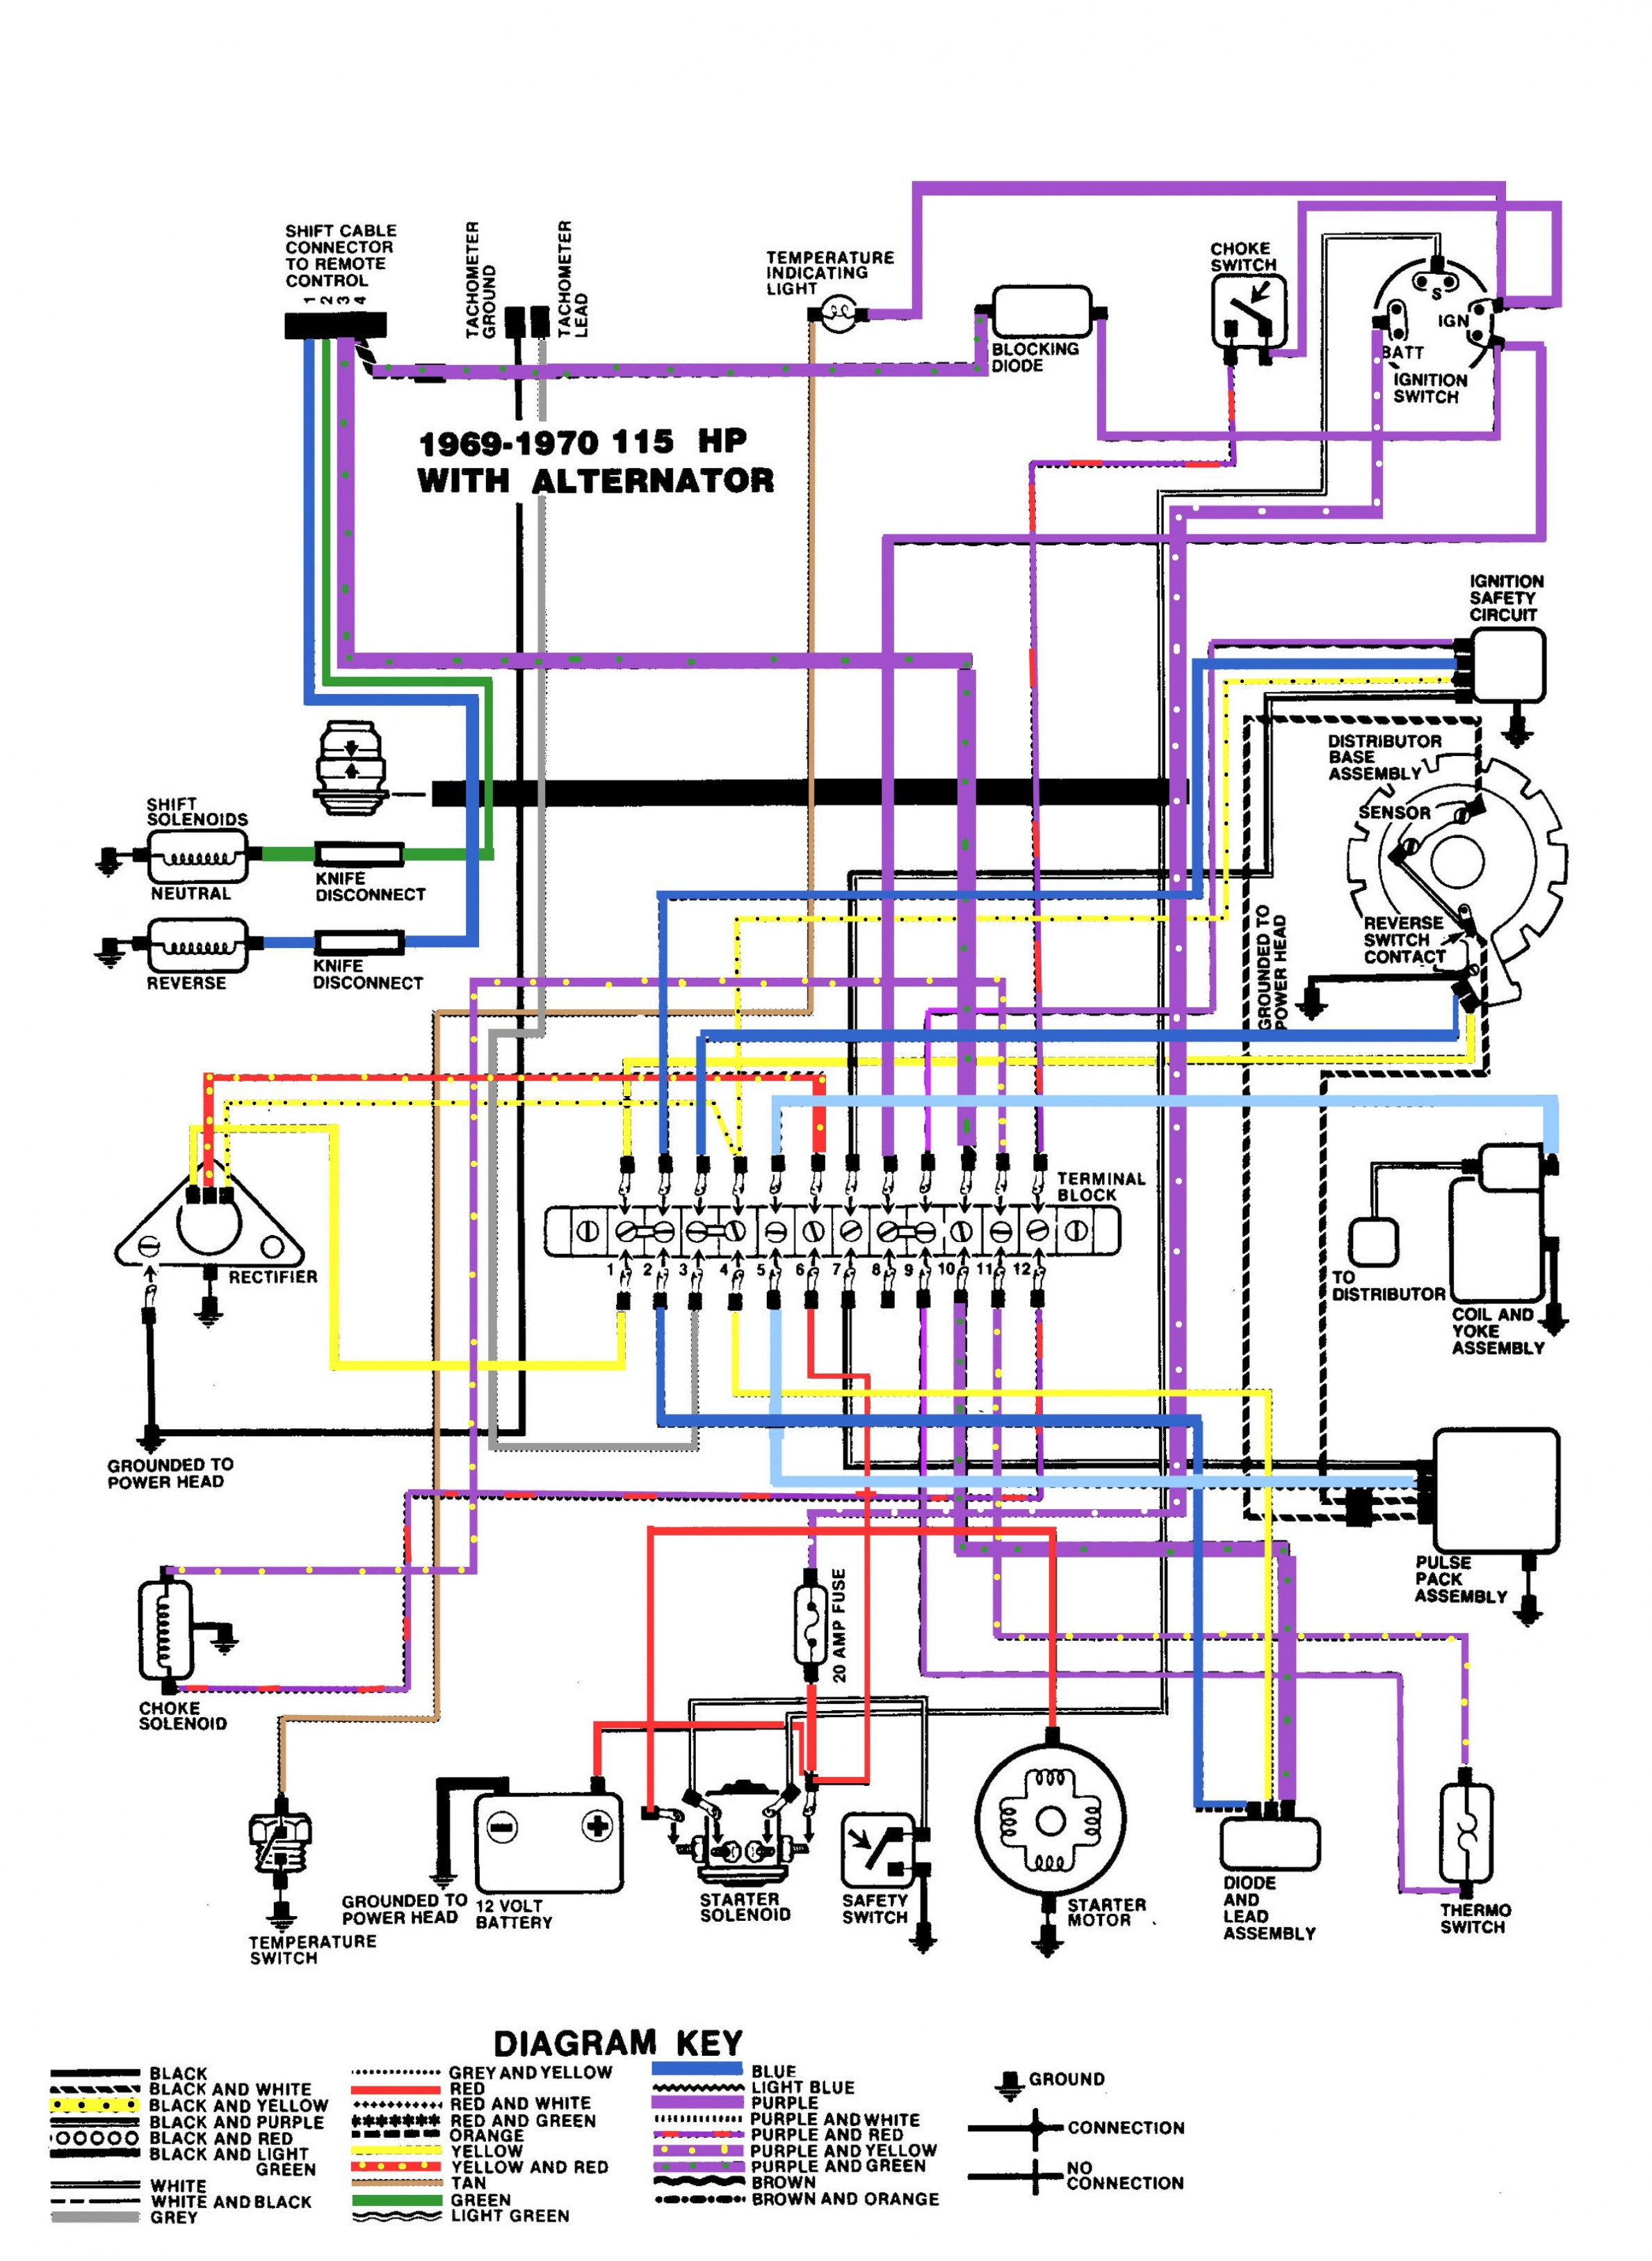 Hp Wiring Diagram | Wiring Library - Johnson Outboard Ignition Switch Wiring Diagram